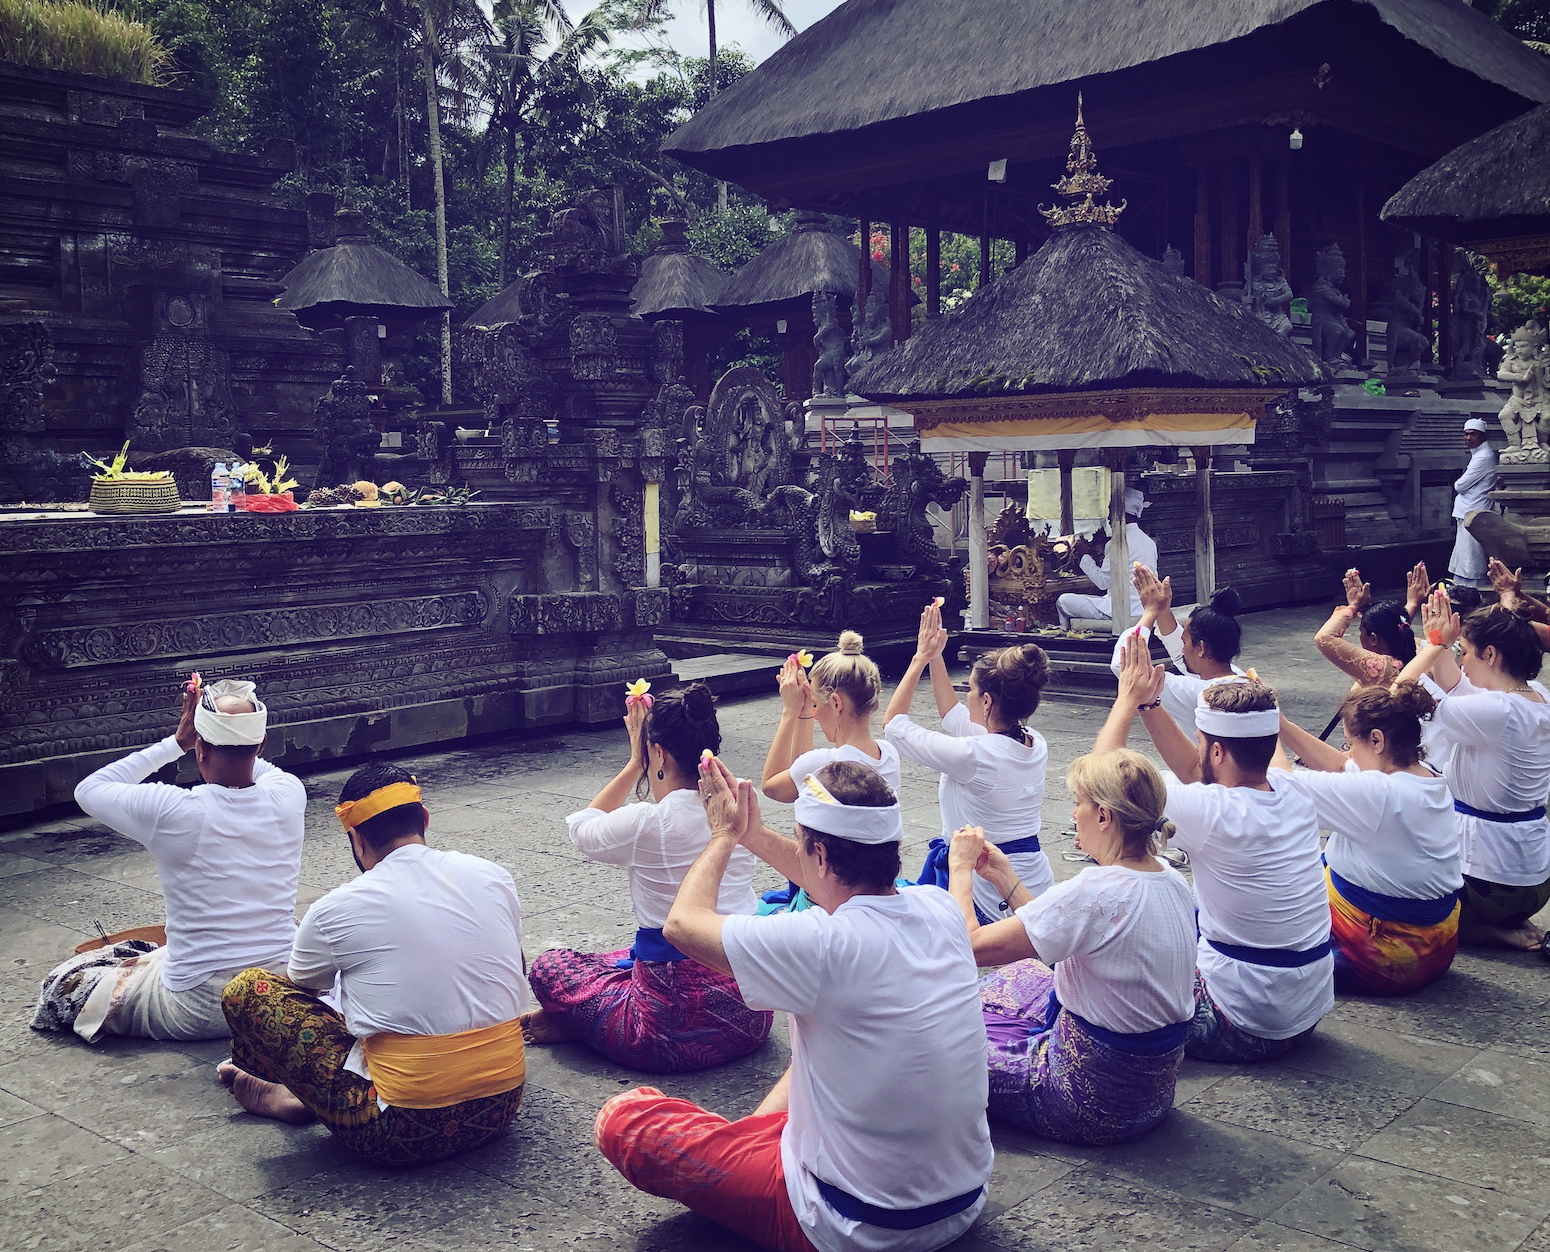 Our amazing Bali guides, Gede and Yanta, lead us through a traditional Balinese ceremony. -